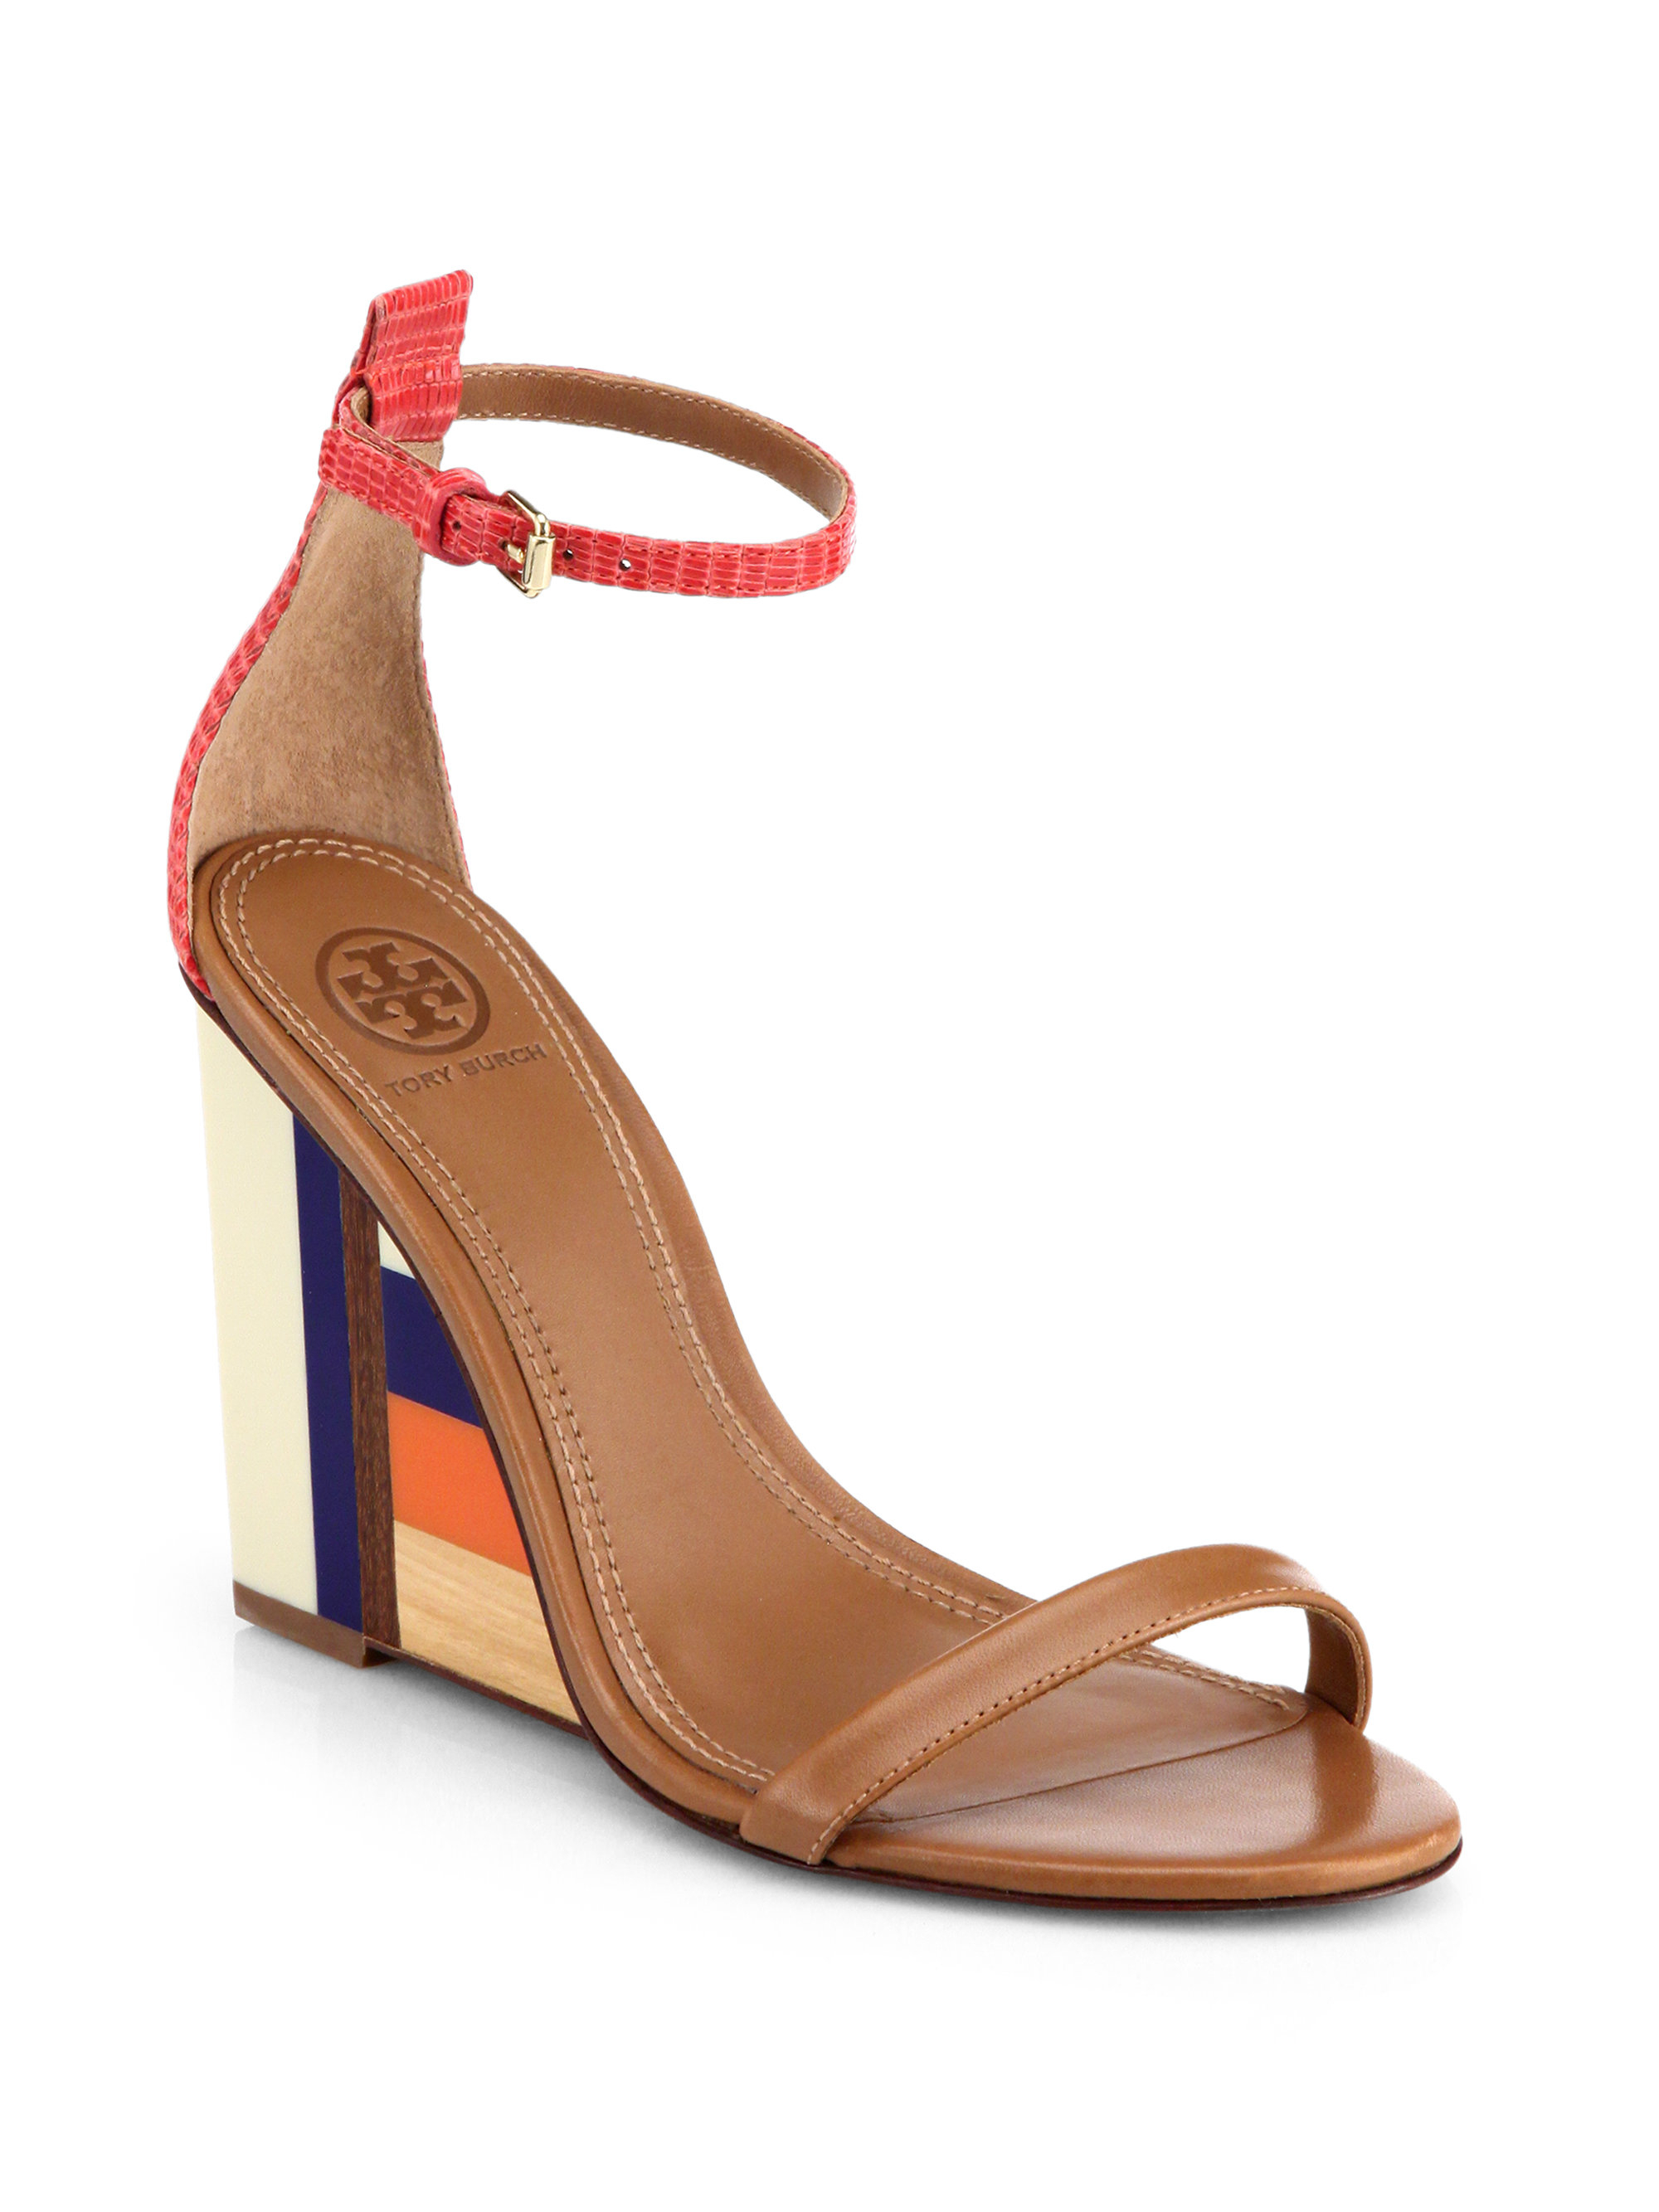 c1f3057b2 Lyst - Tory Burch Colorblock Wooden-Wedge Leather Sandals